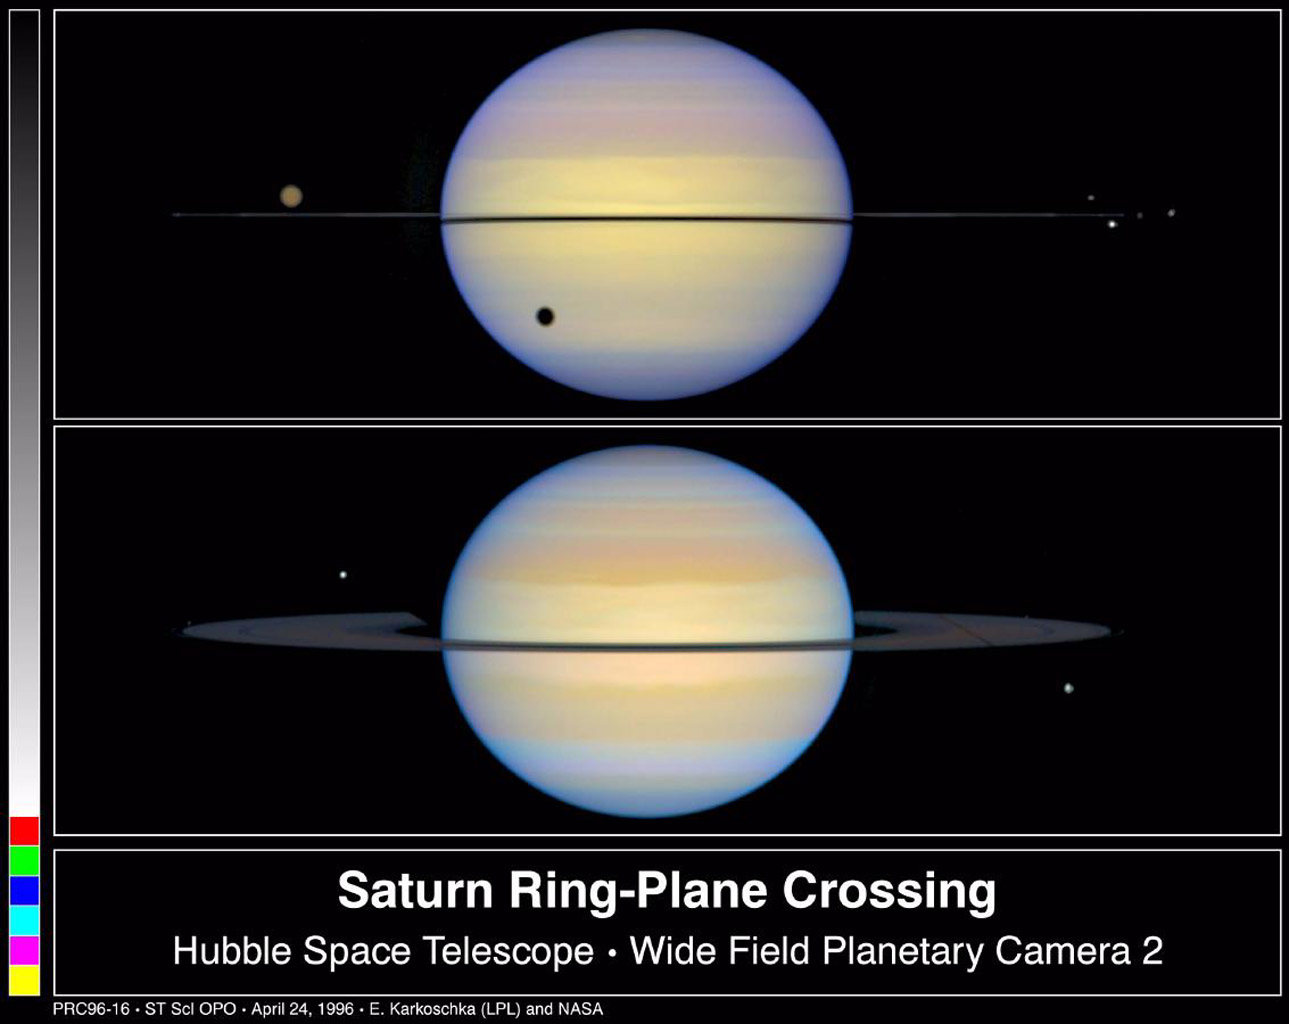 Hubble images of Saturn's rings edge-on